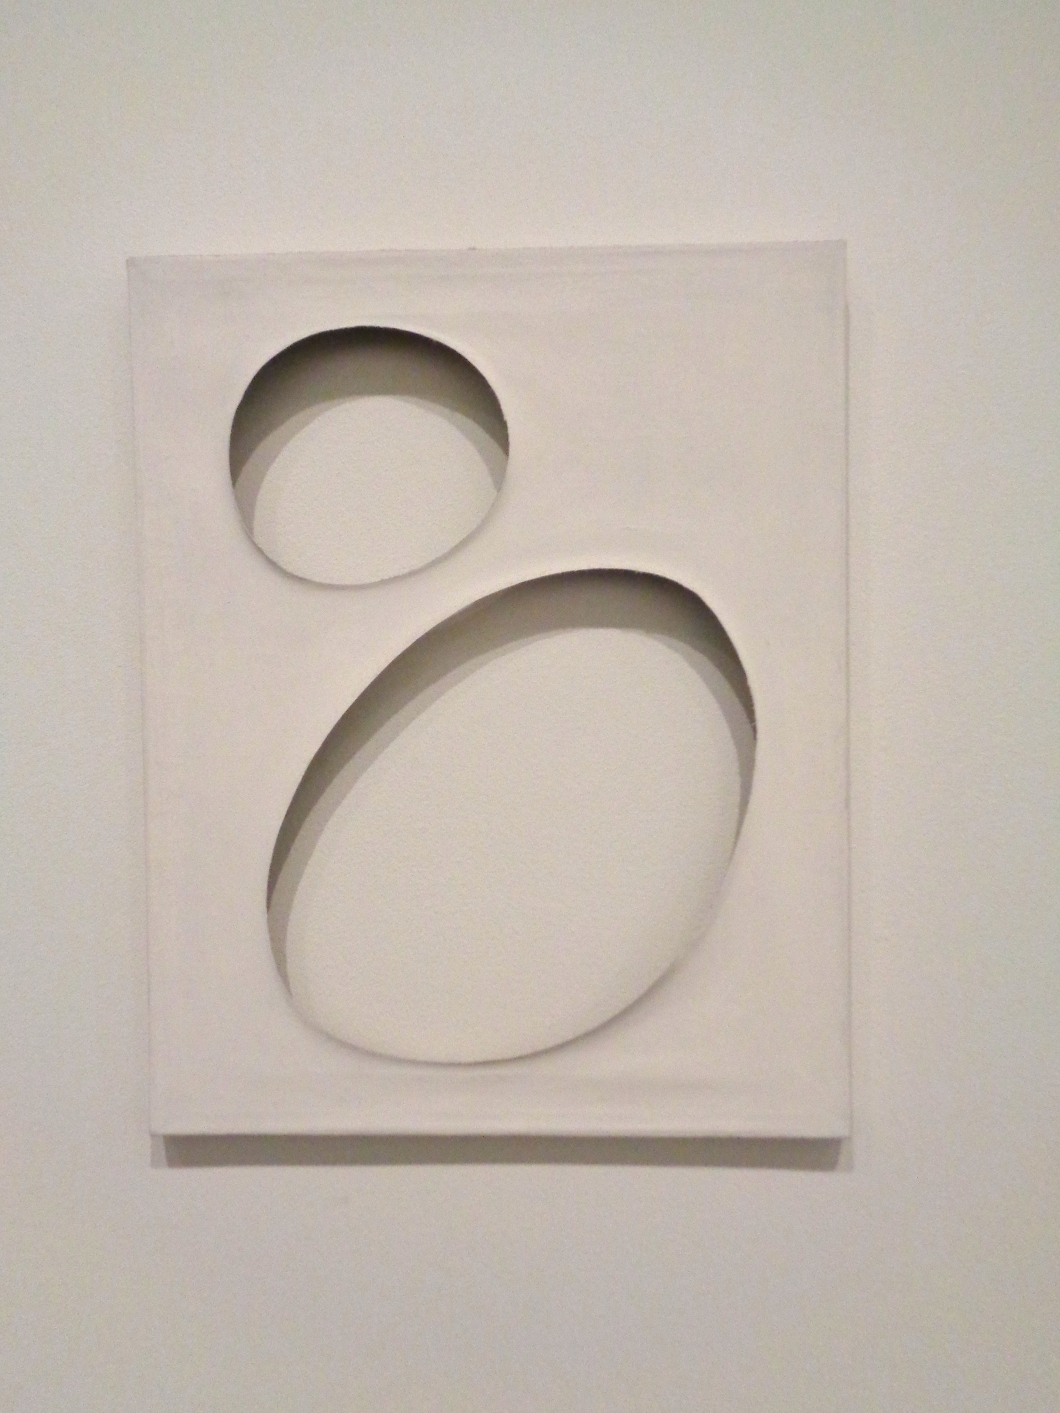 Dadamaino, Volume, 1960. Tate Modern, London